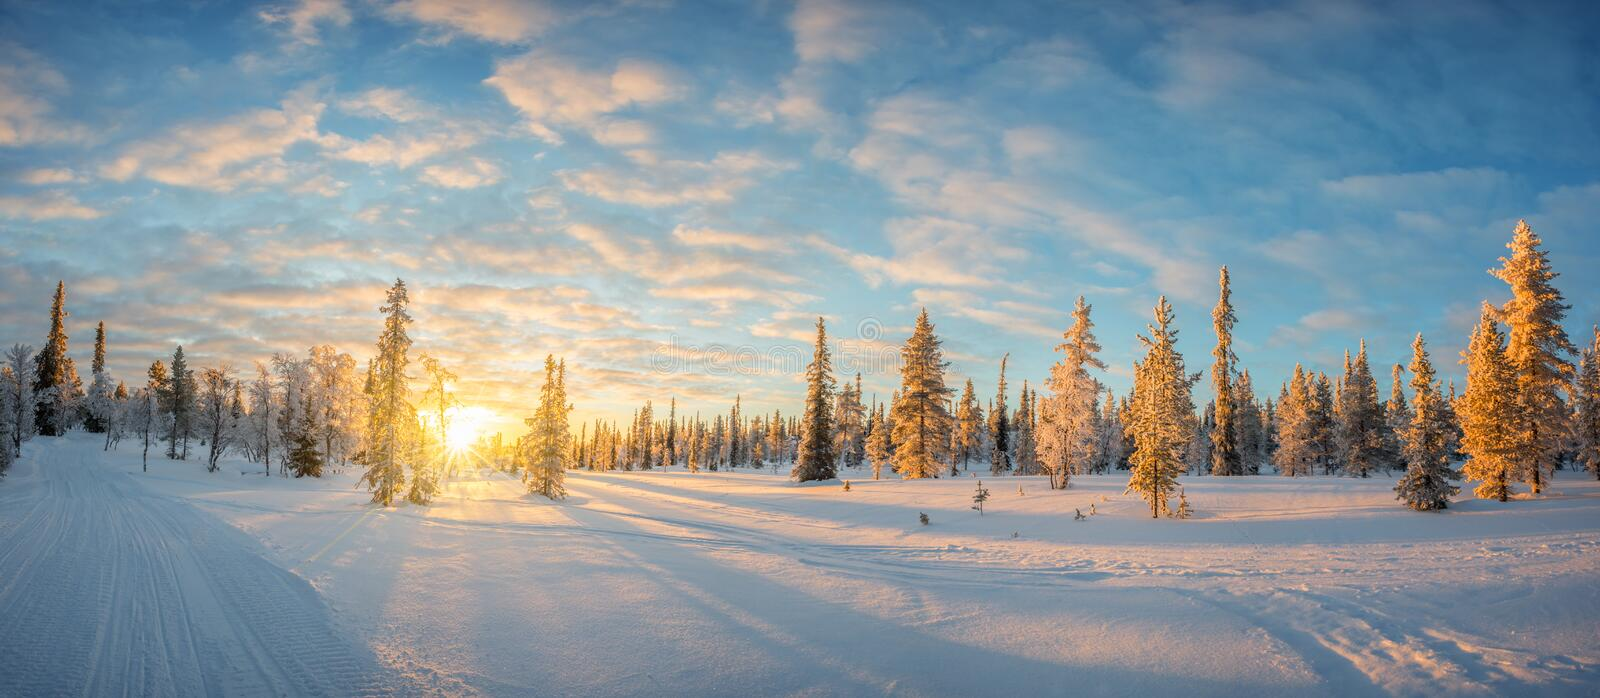 Snowy landscape at sunset, frozen trees in winter in Saariselka, Lapland Finland stock photos